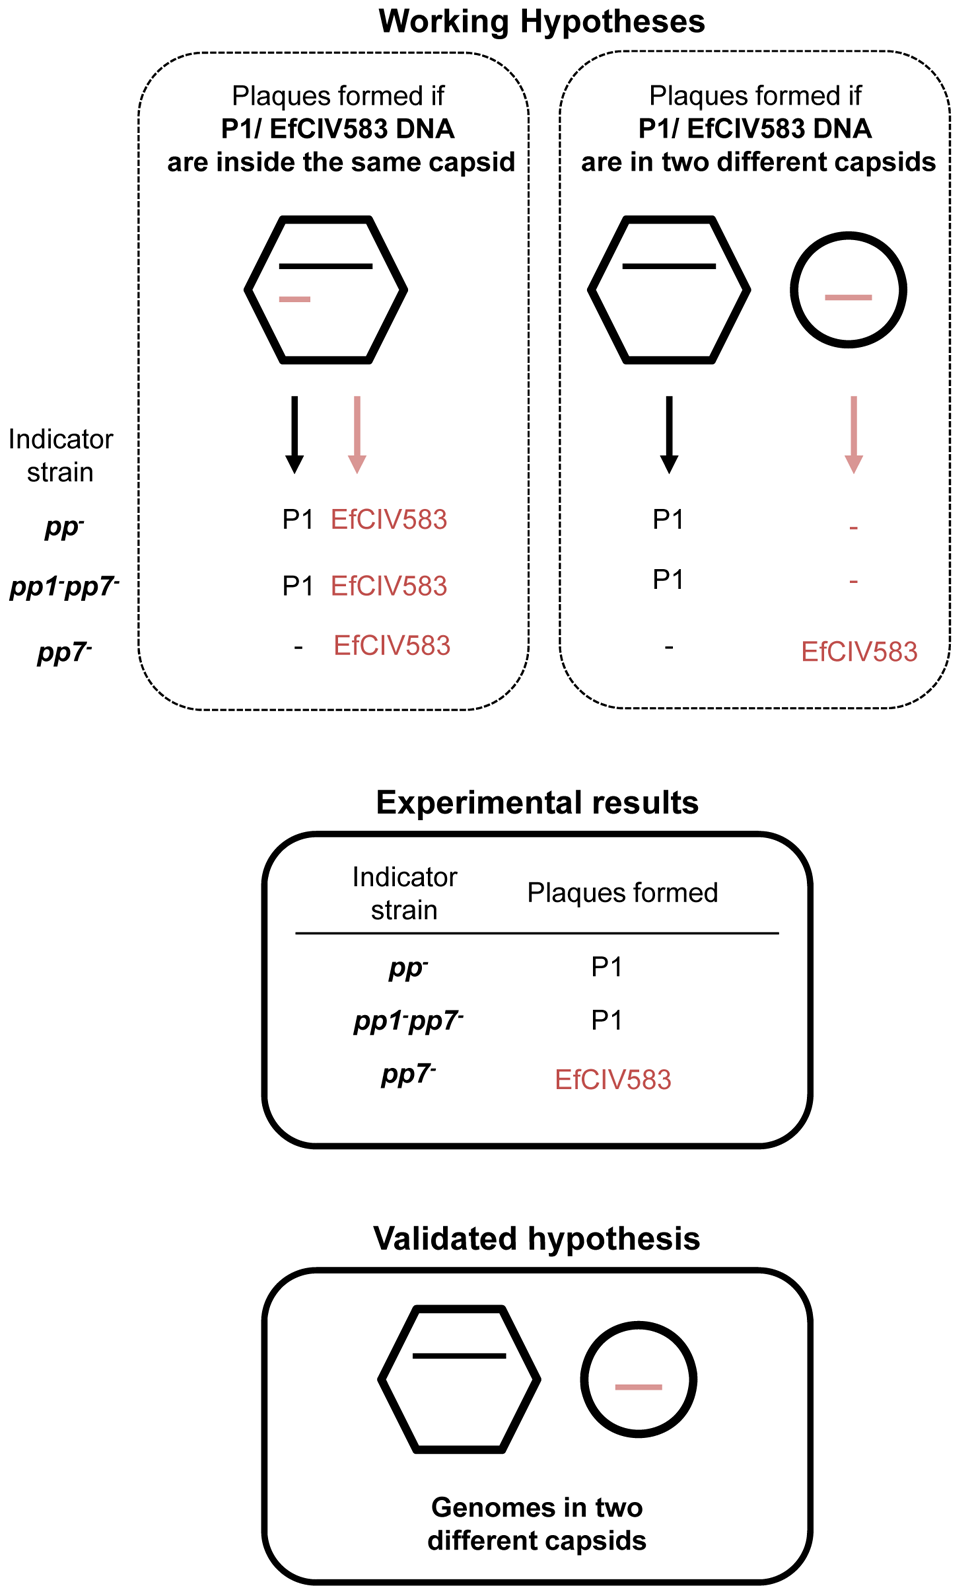 DNA of pp1 and EFCIV583 are packaged in separated capsids.